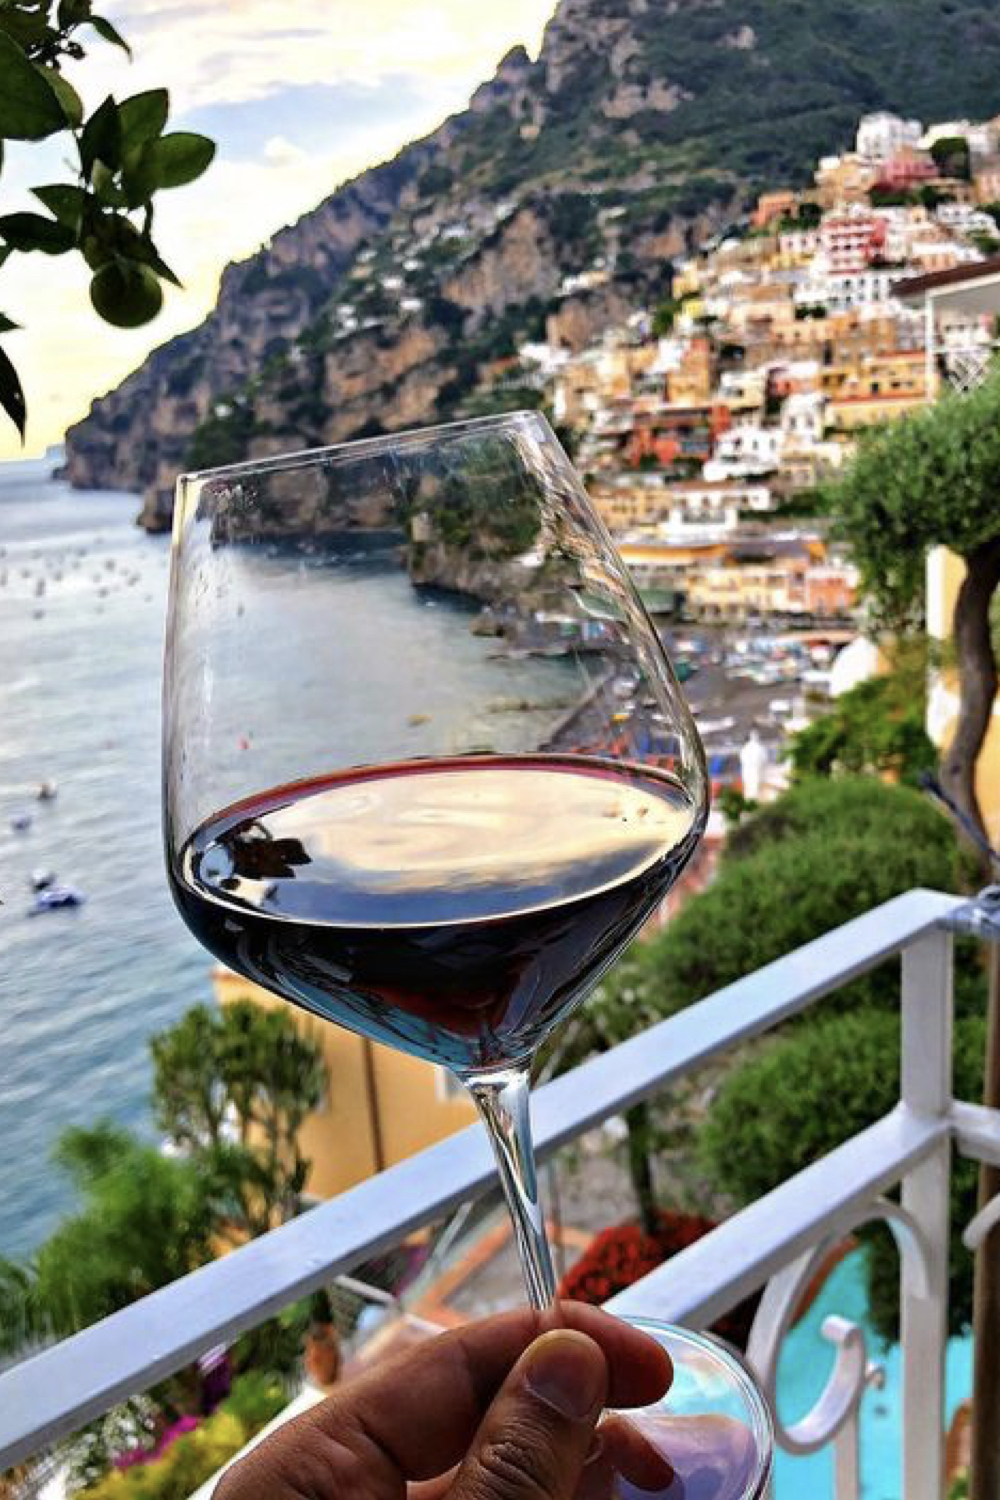 Person holding up a glass of red wine